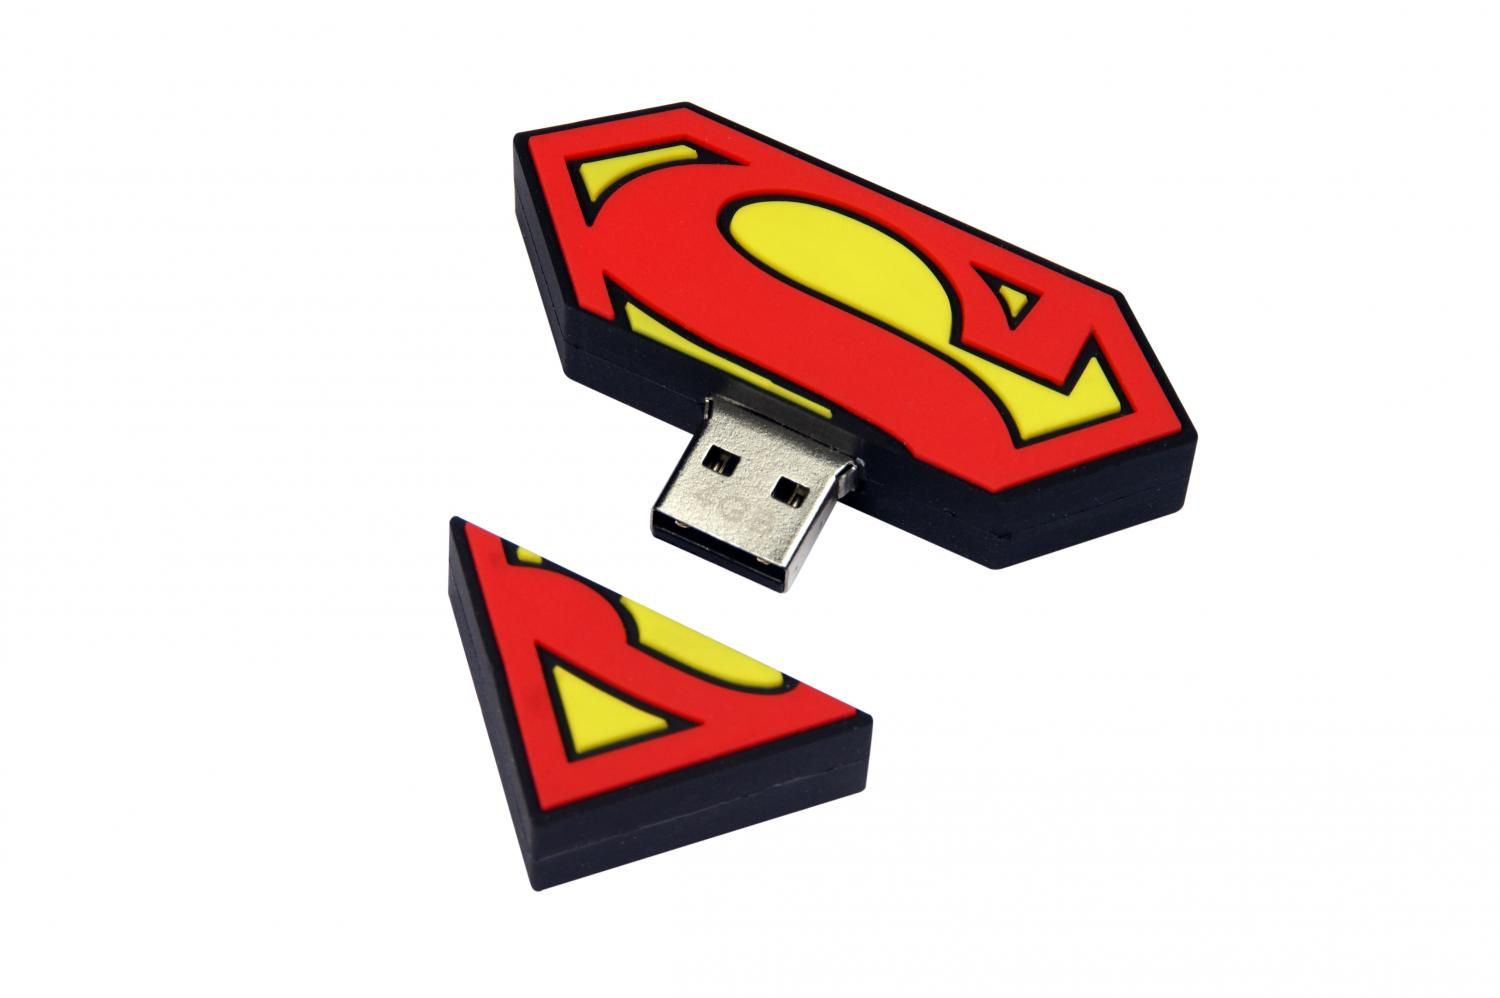 You lost your date on your pendrive? Check our website!